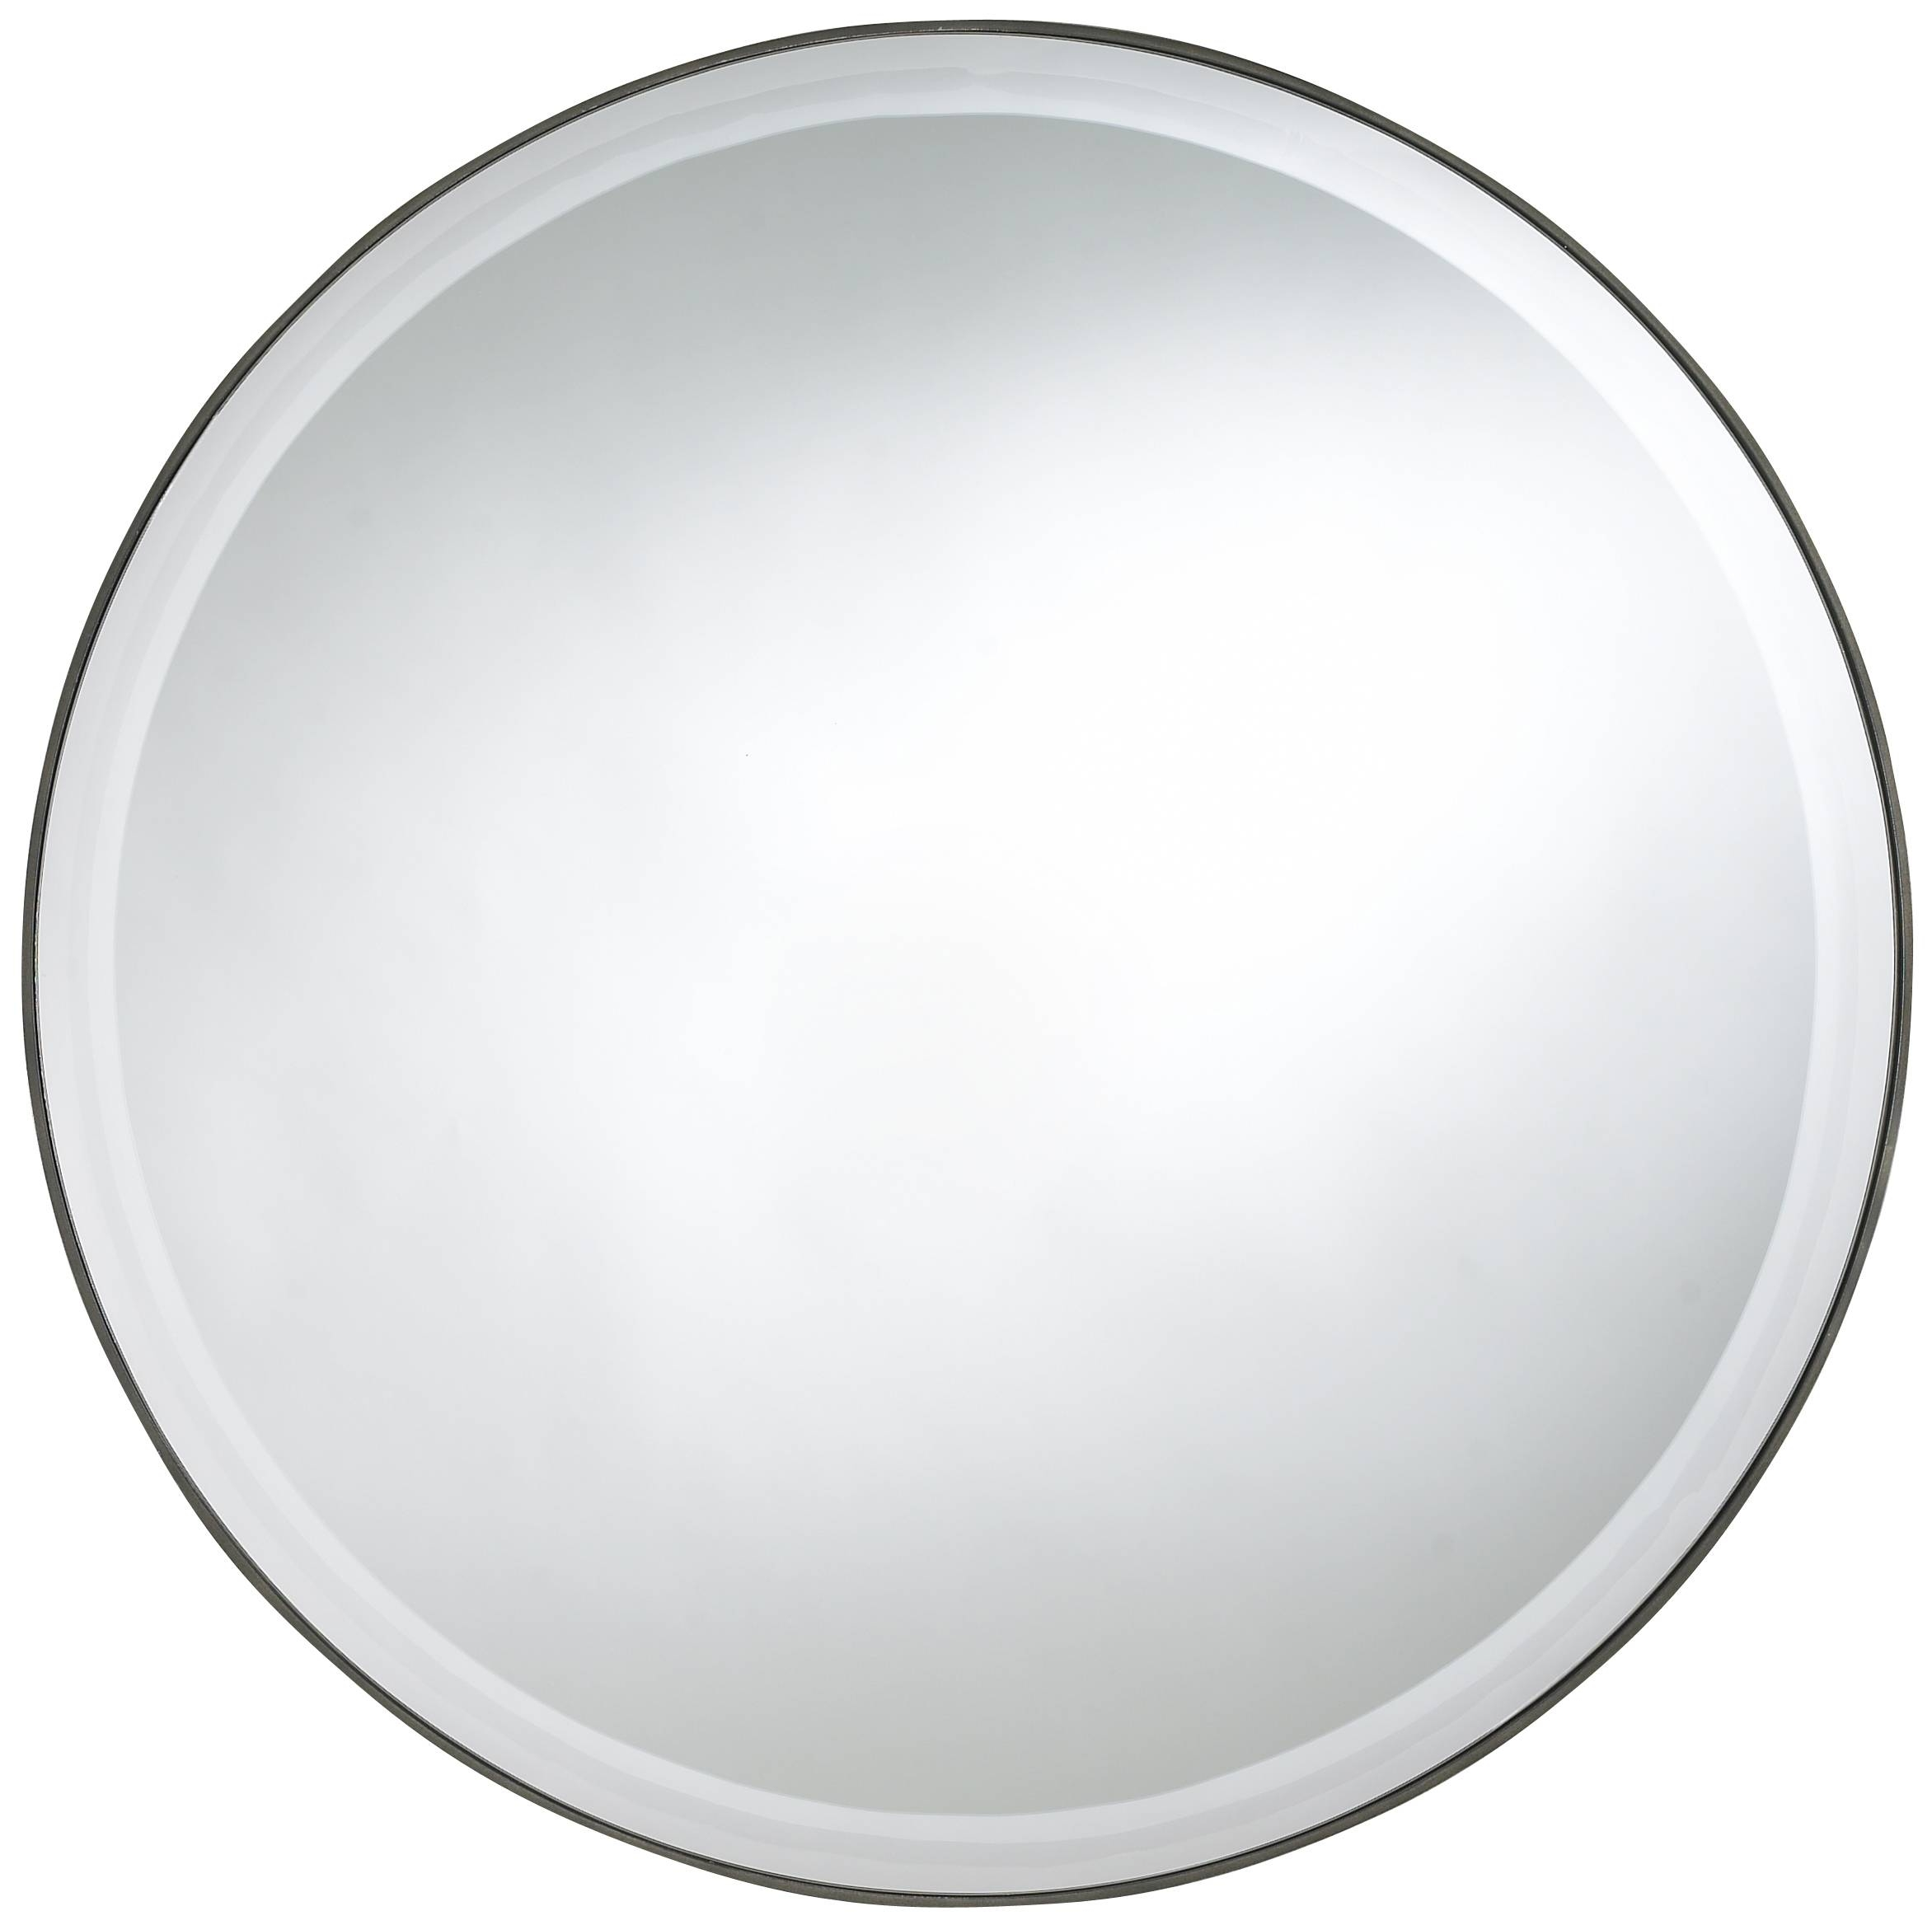 Hanging Round Mirror. Hanging Round Wall Mirrors Set Of 3. Full with Large Round Silver Mirrors (Image 3 of 15)